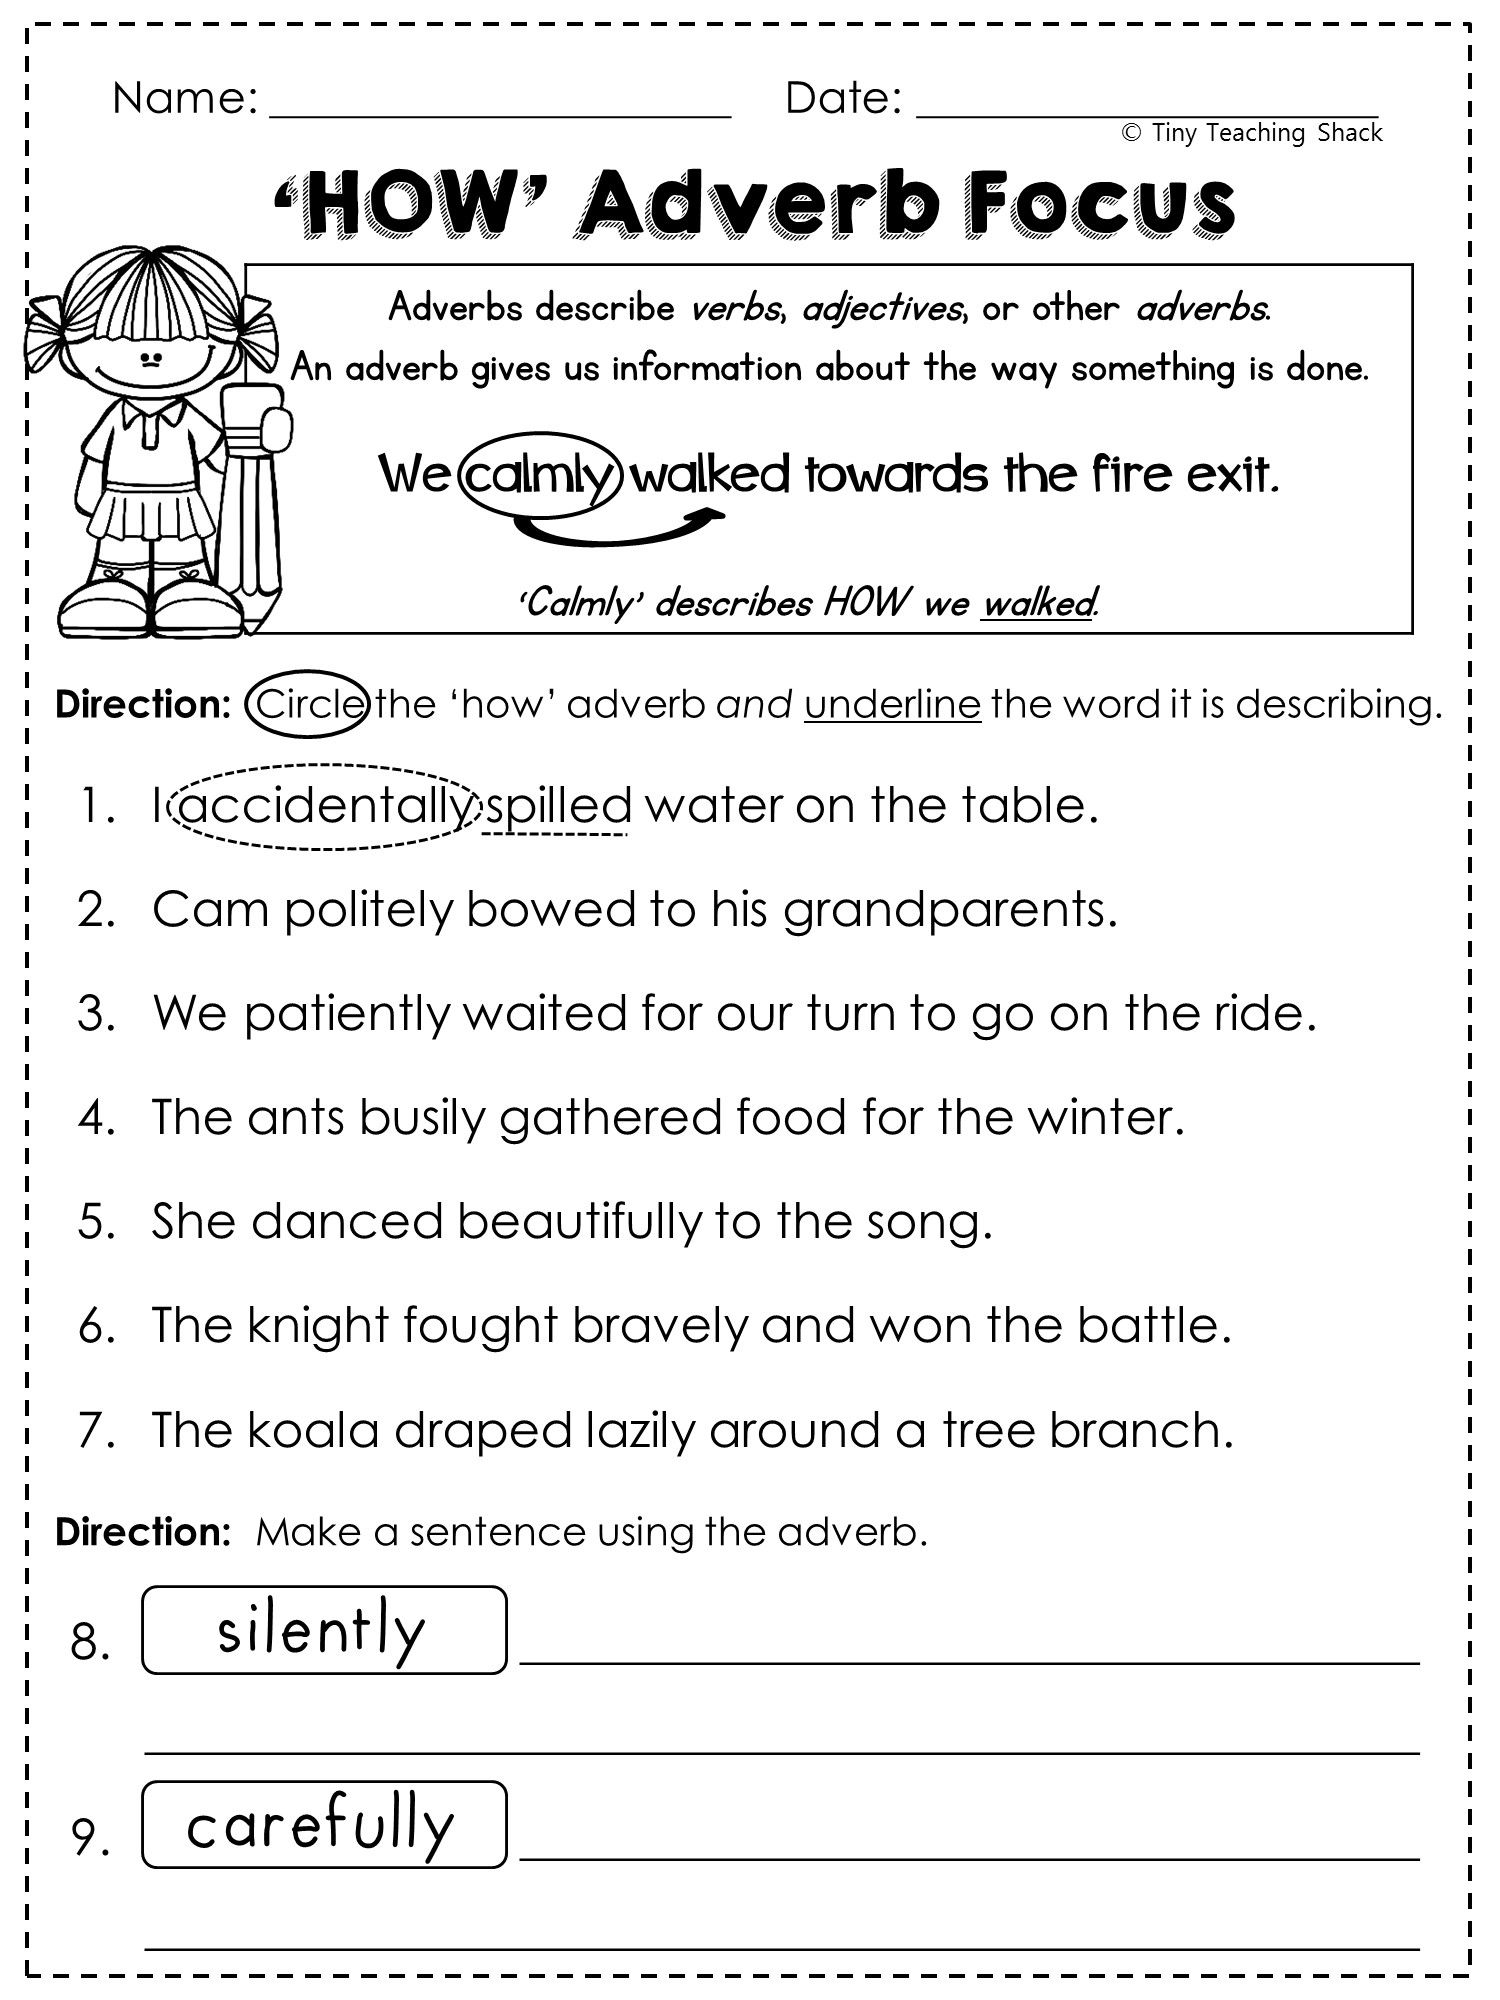 medium resolution of free adverb worksheet   Language arts worksheets